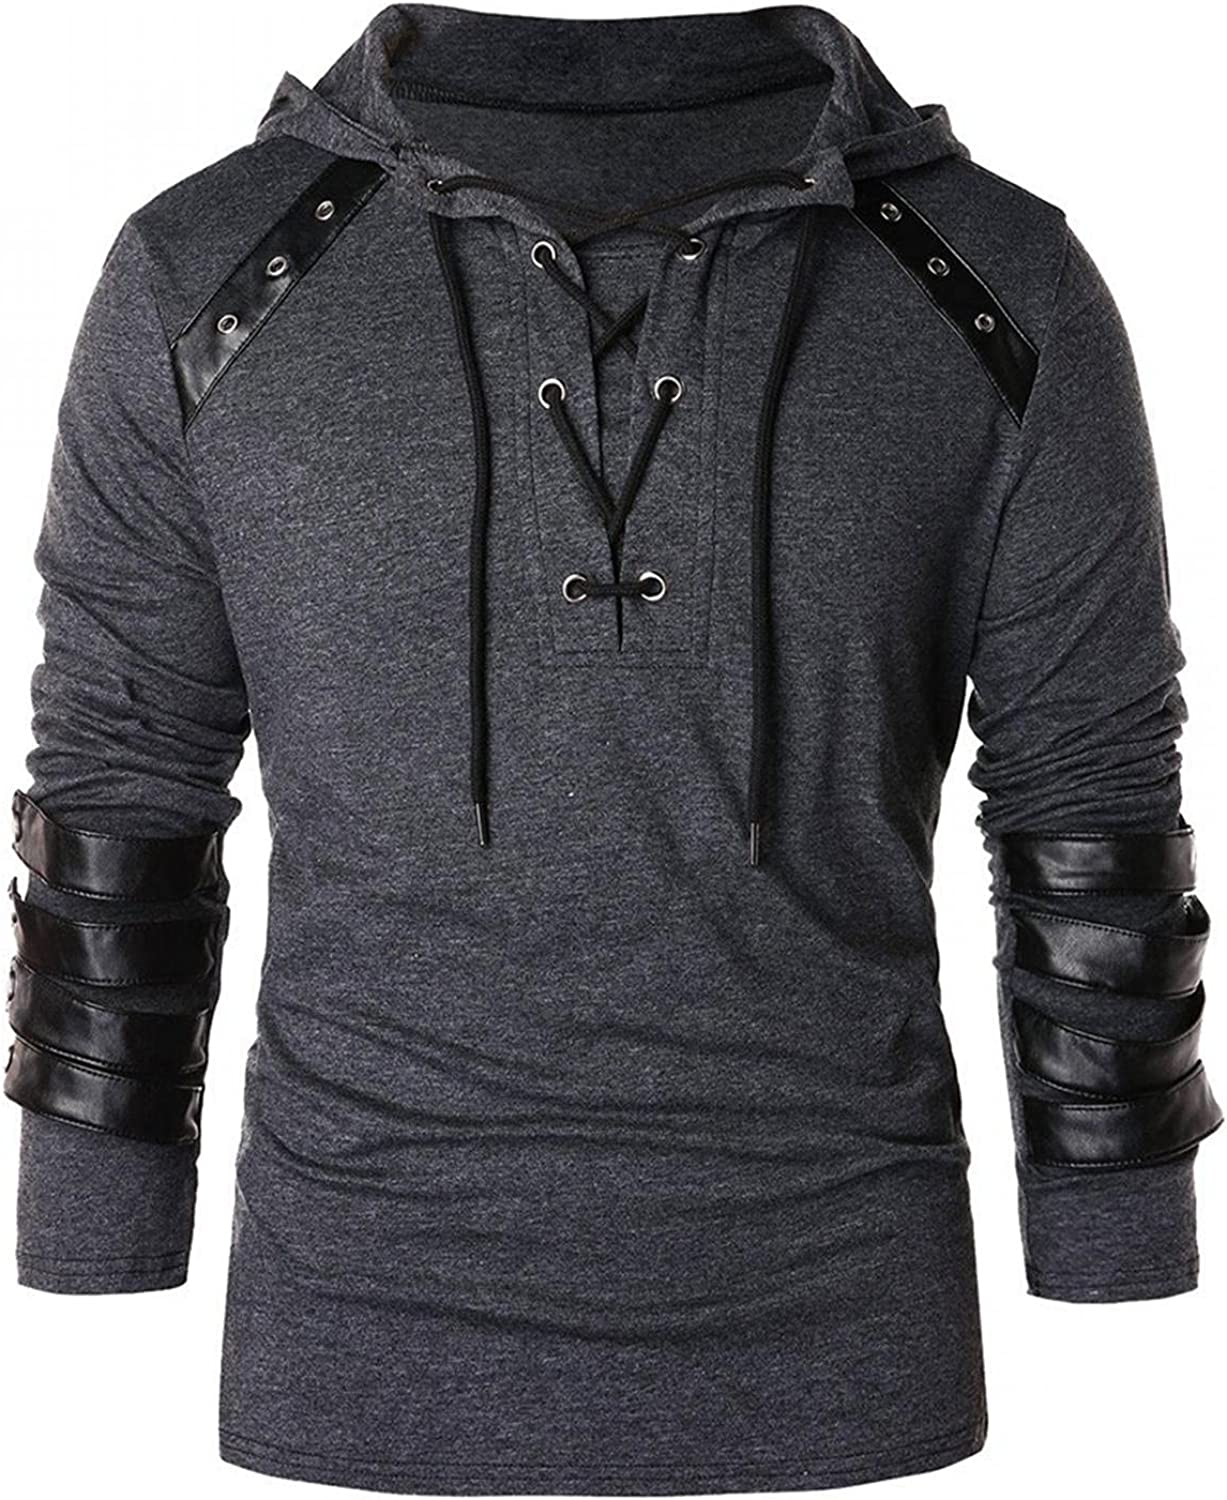 Qsctys Mens Hoodies Pullover Slim Patchwork Leather Long Sleeve Sweatshirts Hooded with Pocket Fashion Hoodies